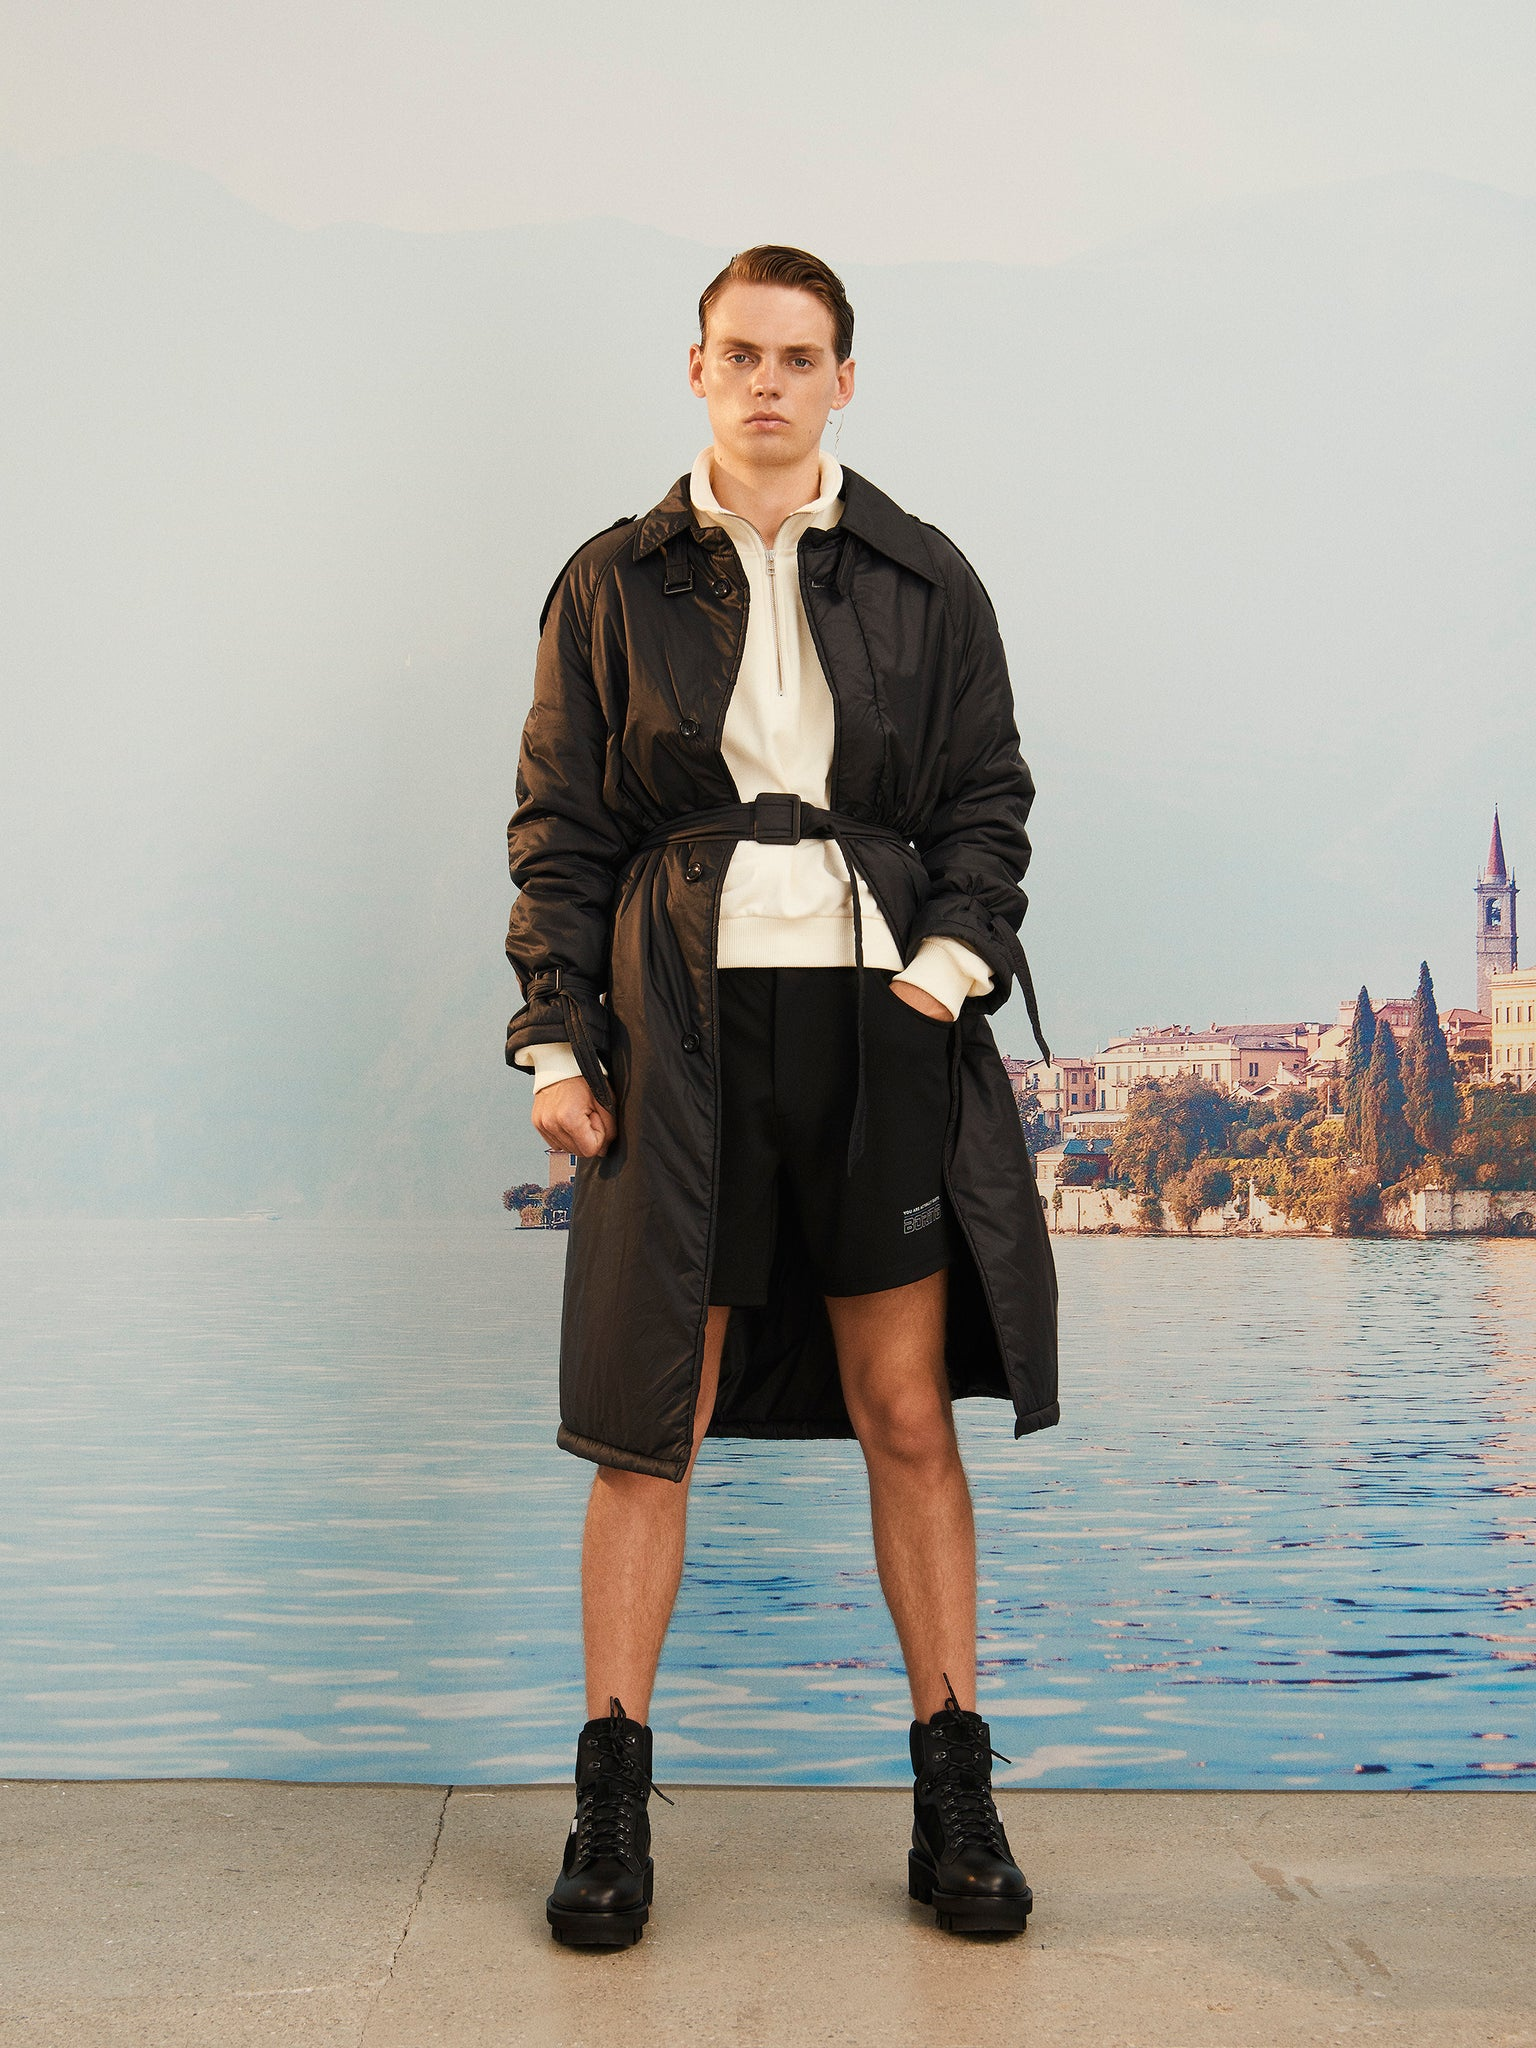 Martin Asbjørn lookbook image from SS20 collection wearing black tennis shorts boring